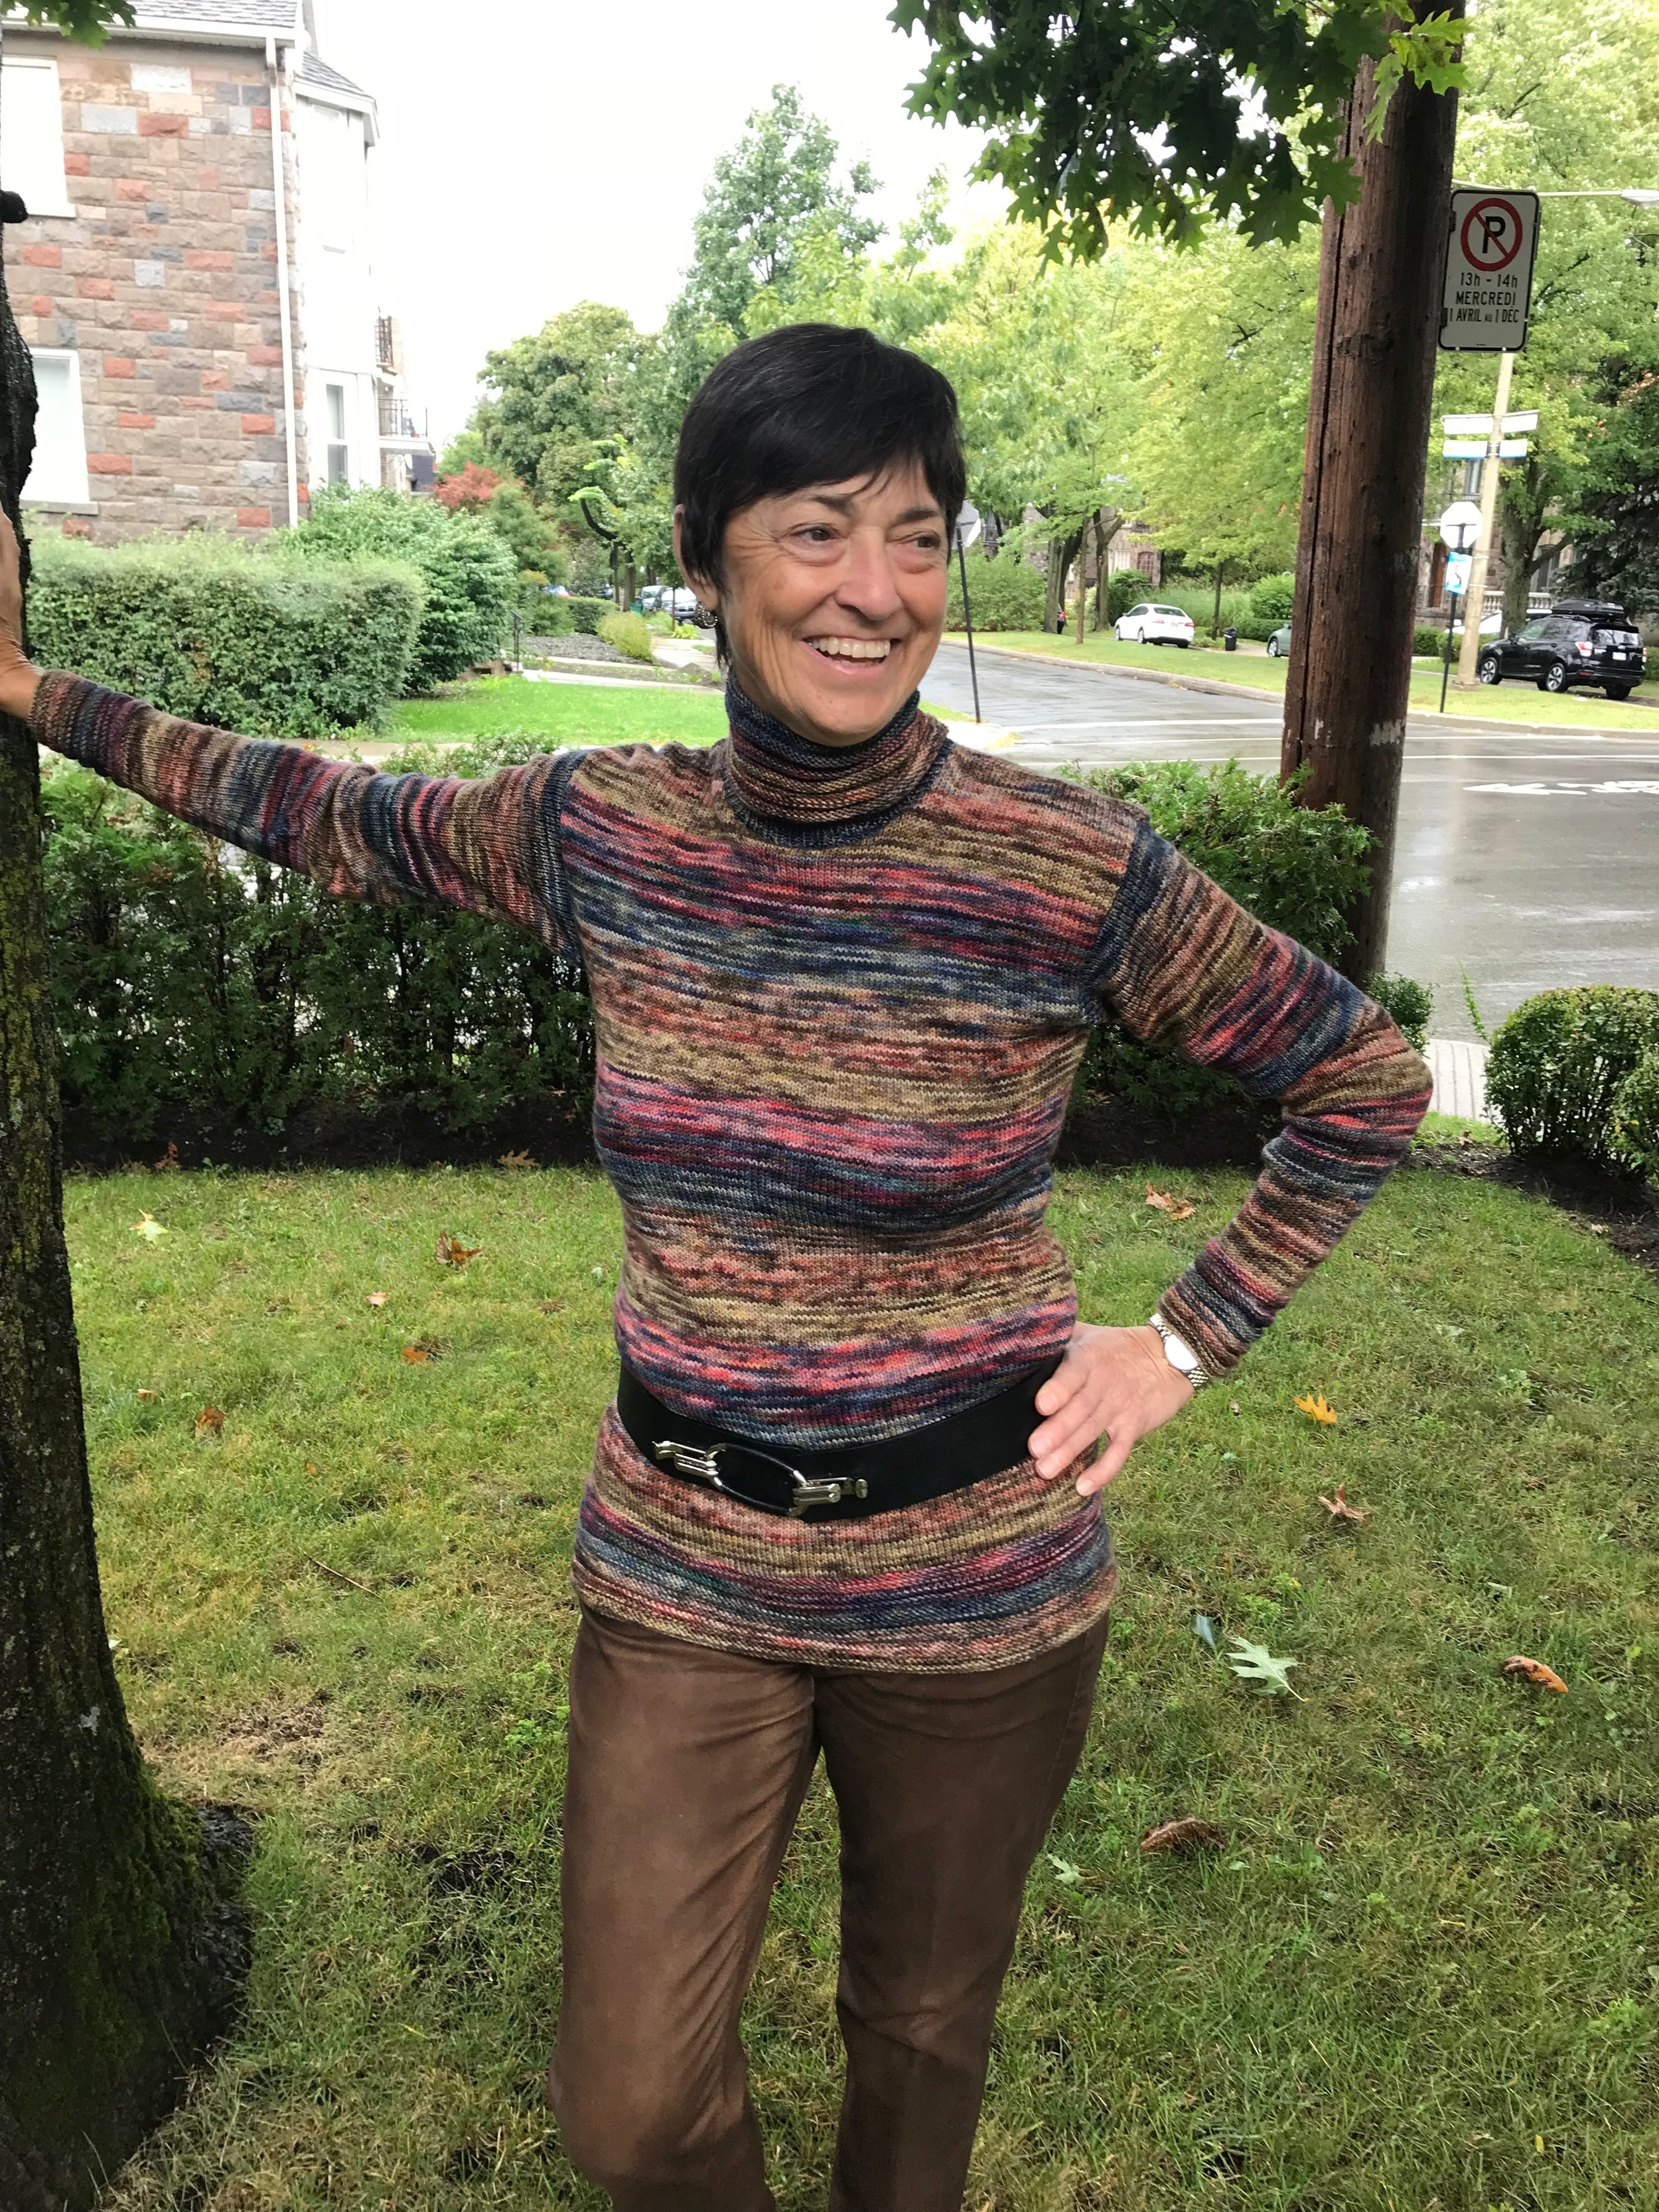 Denise - My sister and I attended Vogue knitting NYC in january 2018 to celebrate her 60th. it was a very special trip for us as do don't have many occasions to travel and intensely spend time with yarns together.At the banquet, i won your draw for the koigu sweater. i was thrilled, and when i returned to the table, because it was my sisters birthday, i gave her my prize. She was beyond thrilled.I wanted to personally thank you for this door prize as it made our evening and our event.Upon our return, she frantically knitted the prize because i told her that if she did not knit it by next jan. then i would take it back and knit it.I have enclosed the photos of her with her sweater and wanted to assure you that we both were not familiar or had knitted with Koigu and now you have 2 more fans. she loved the yarn and its softness and durability are remarkable. to top it off you are canadian!thank you thank you your prize made the 2 of us so happy- We both felt like winners!I will be purchasing my koigu to make my sweater!thank you for sponsoring events like vogue and for spending the yarn love!